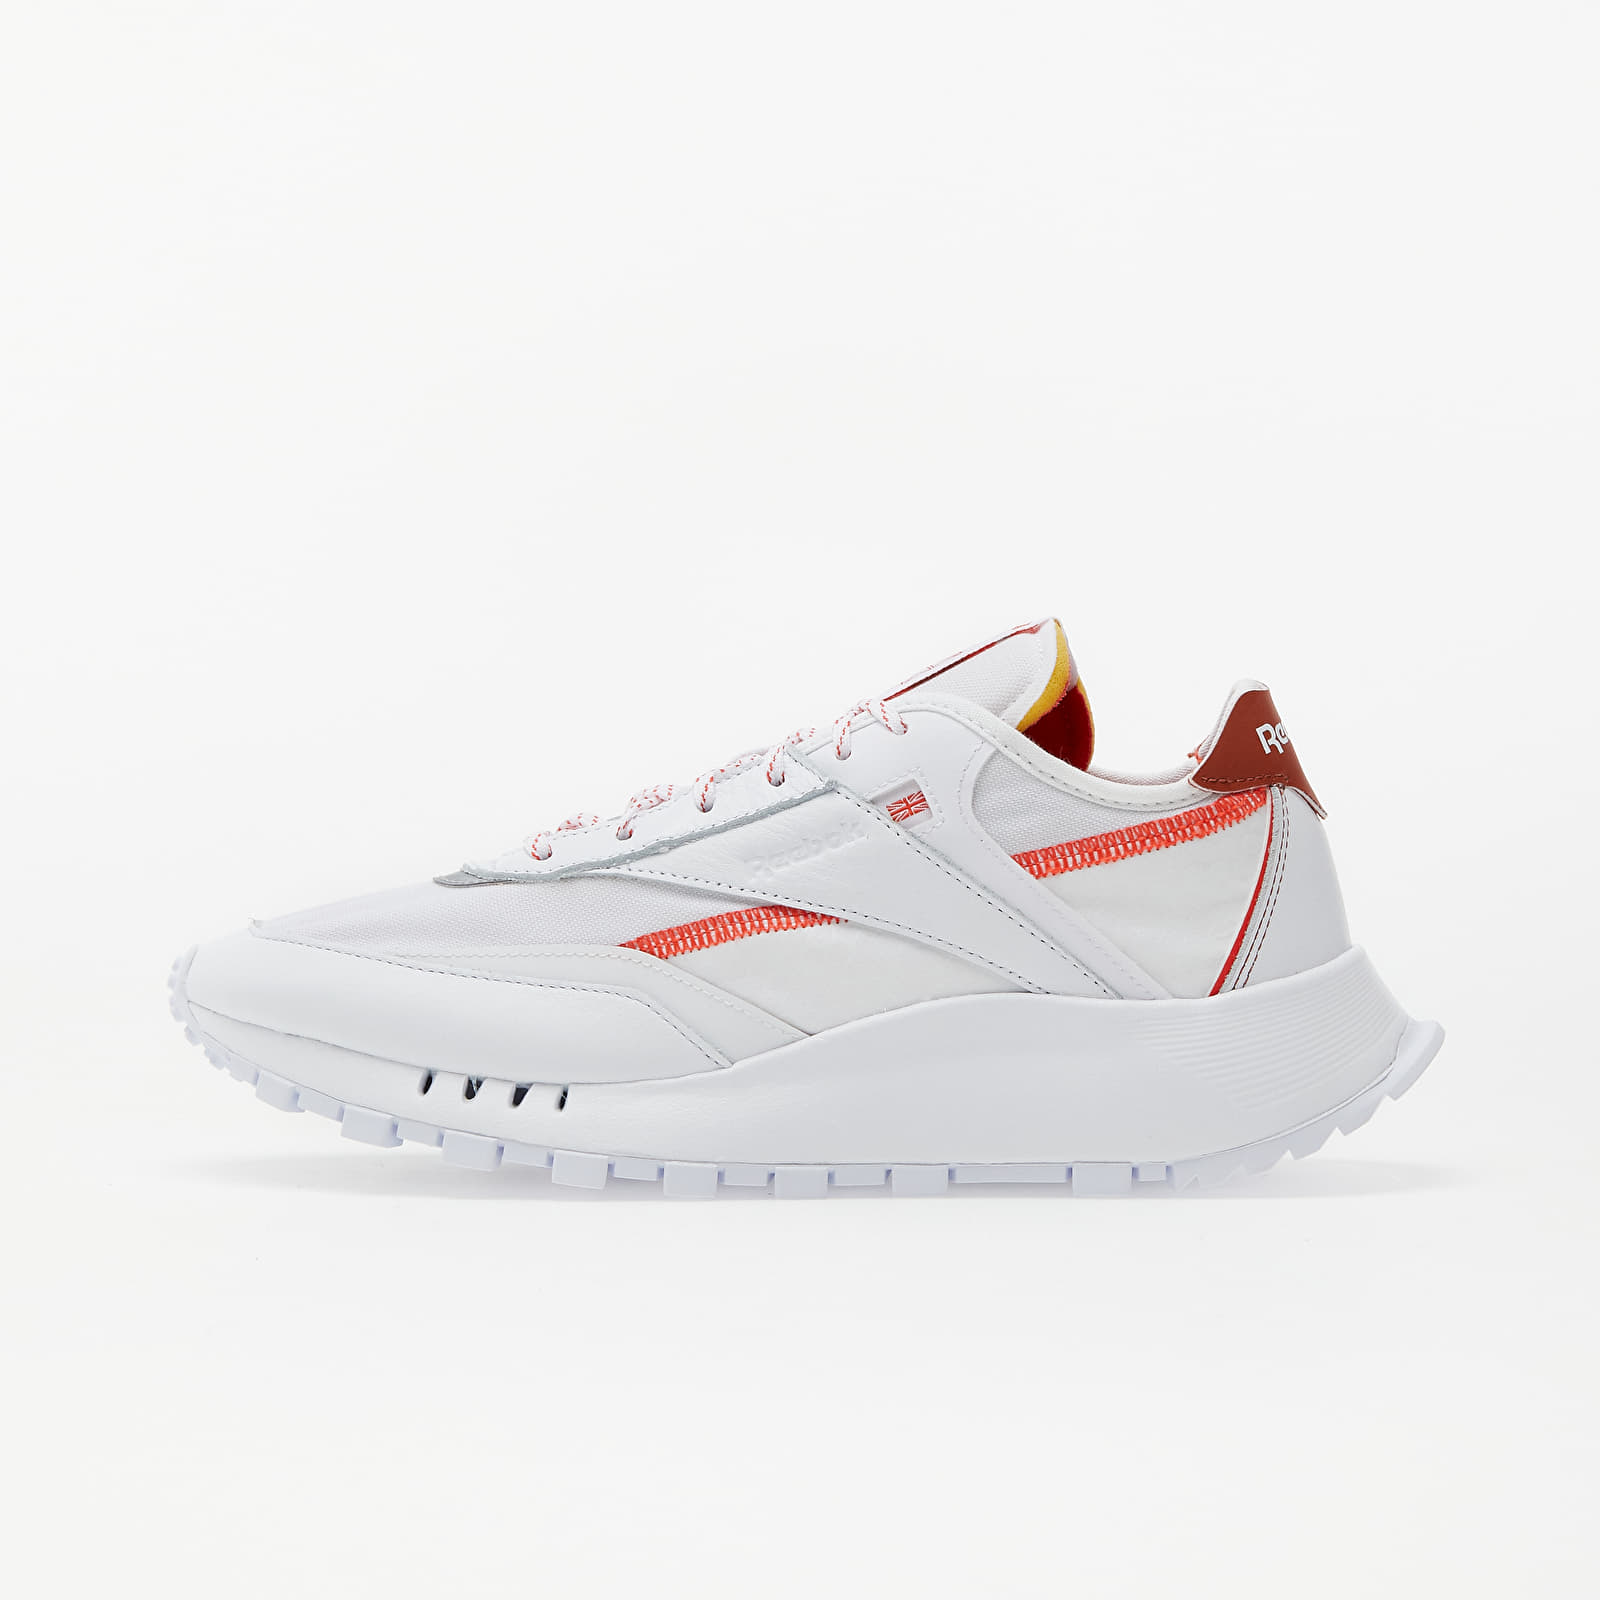 Reebok Classic Legacy Pure White/ Dynamic Red/ Baked Earth FZ2919